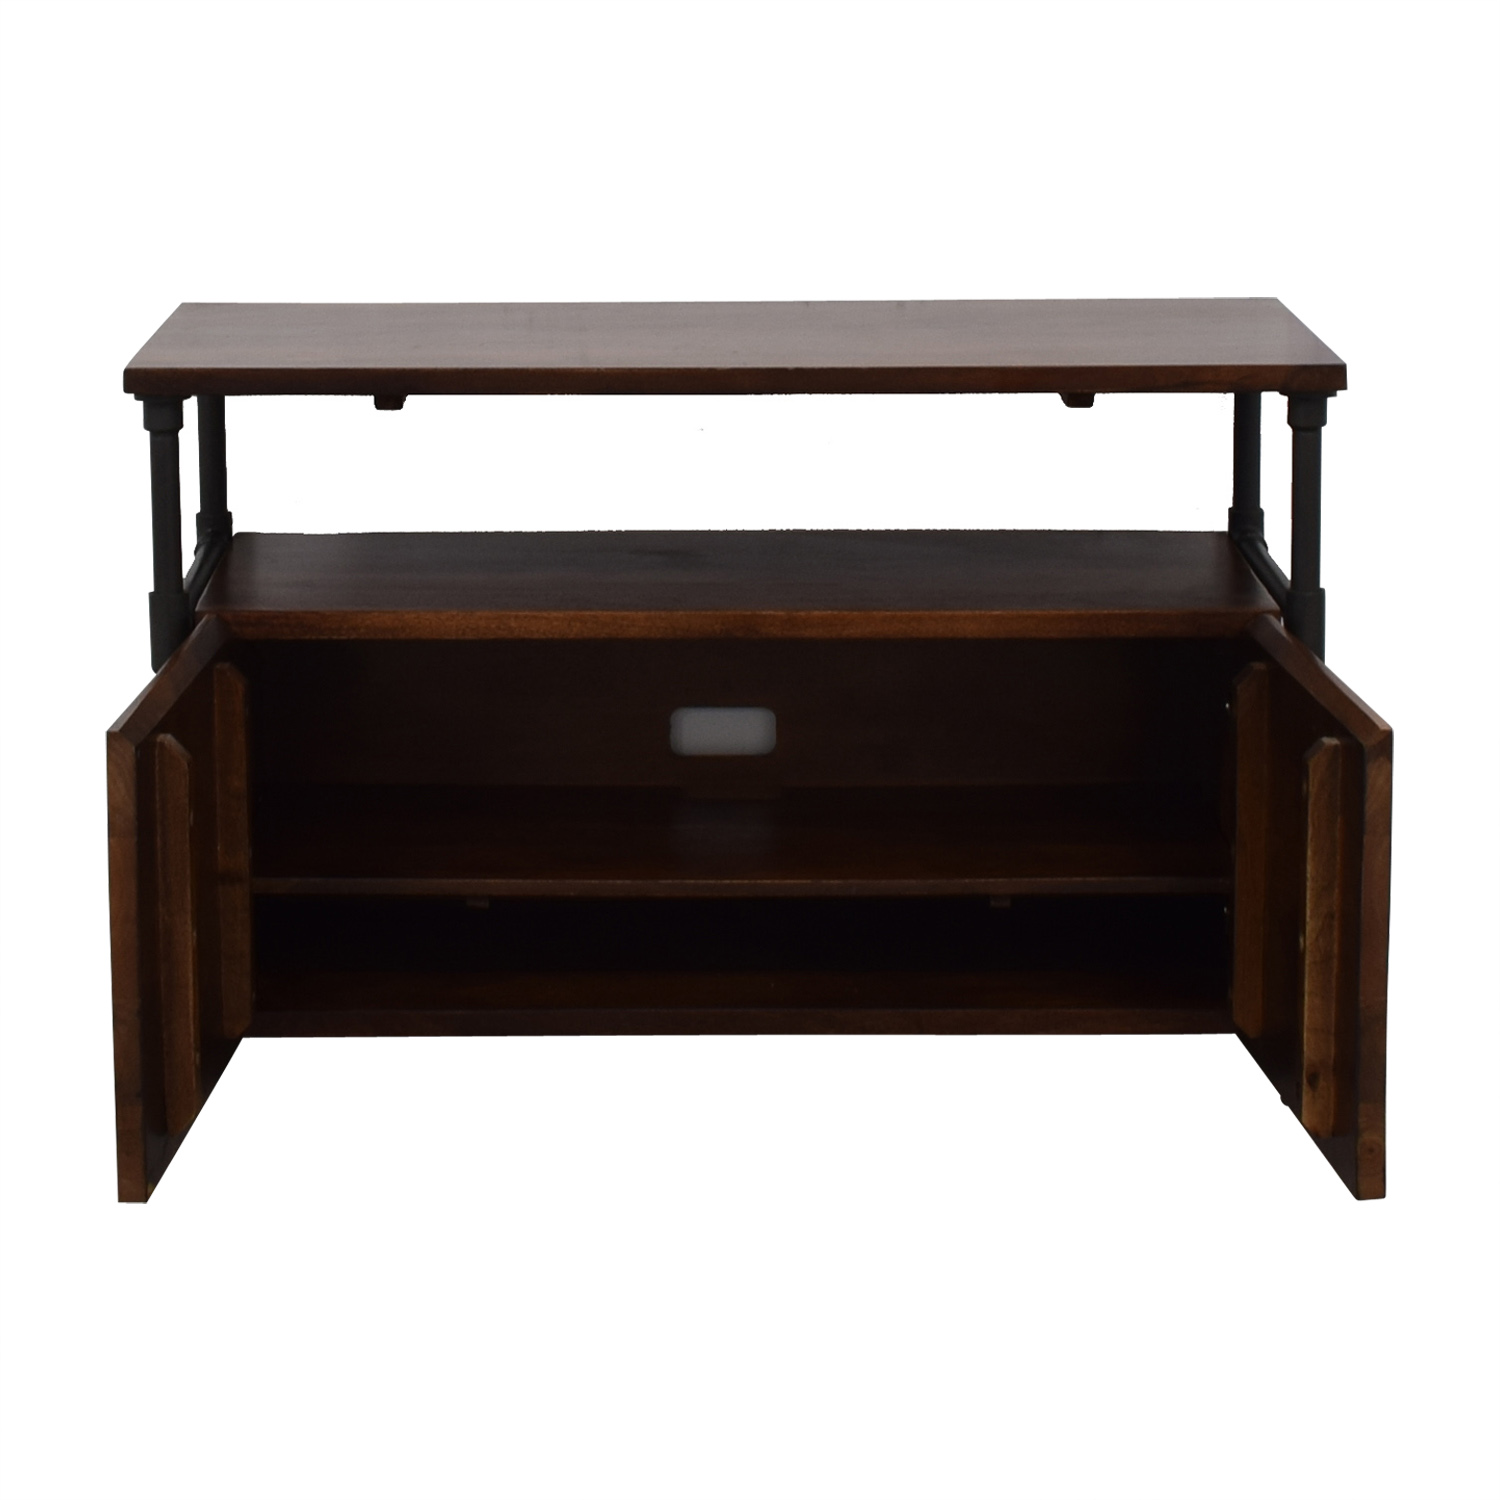 West Elm West Elm Pipe Media Console Short Cafe dimensions